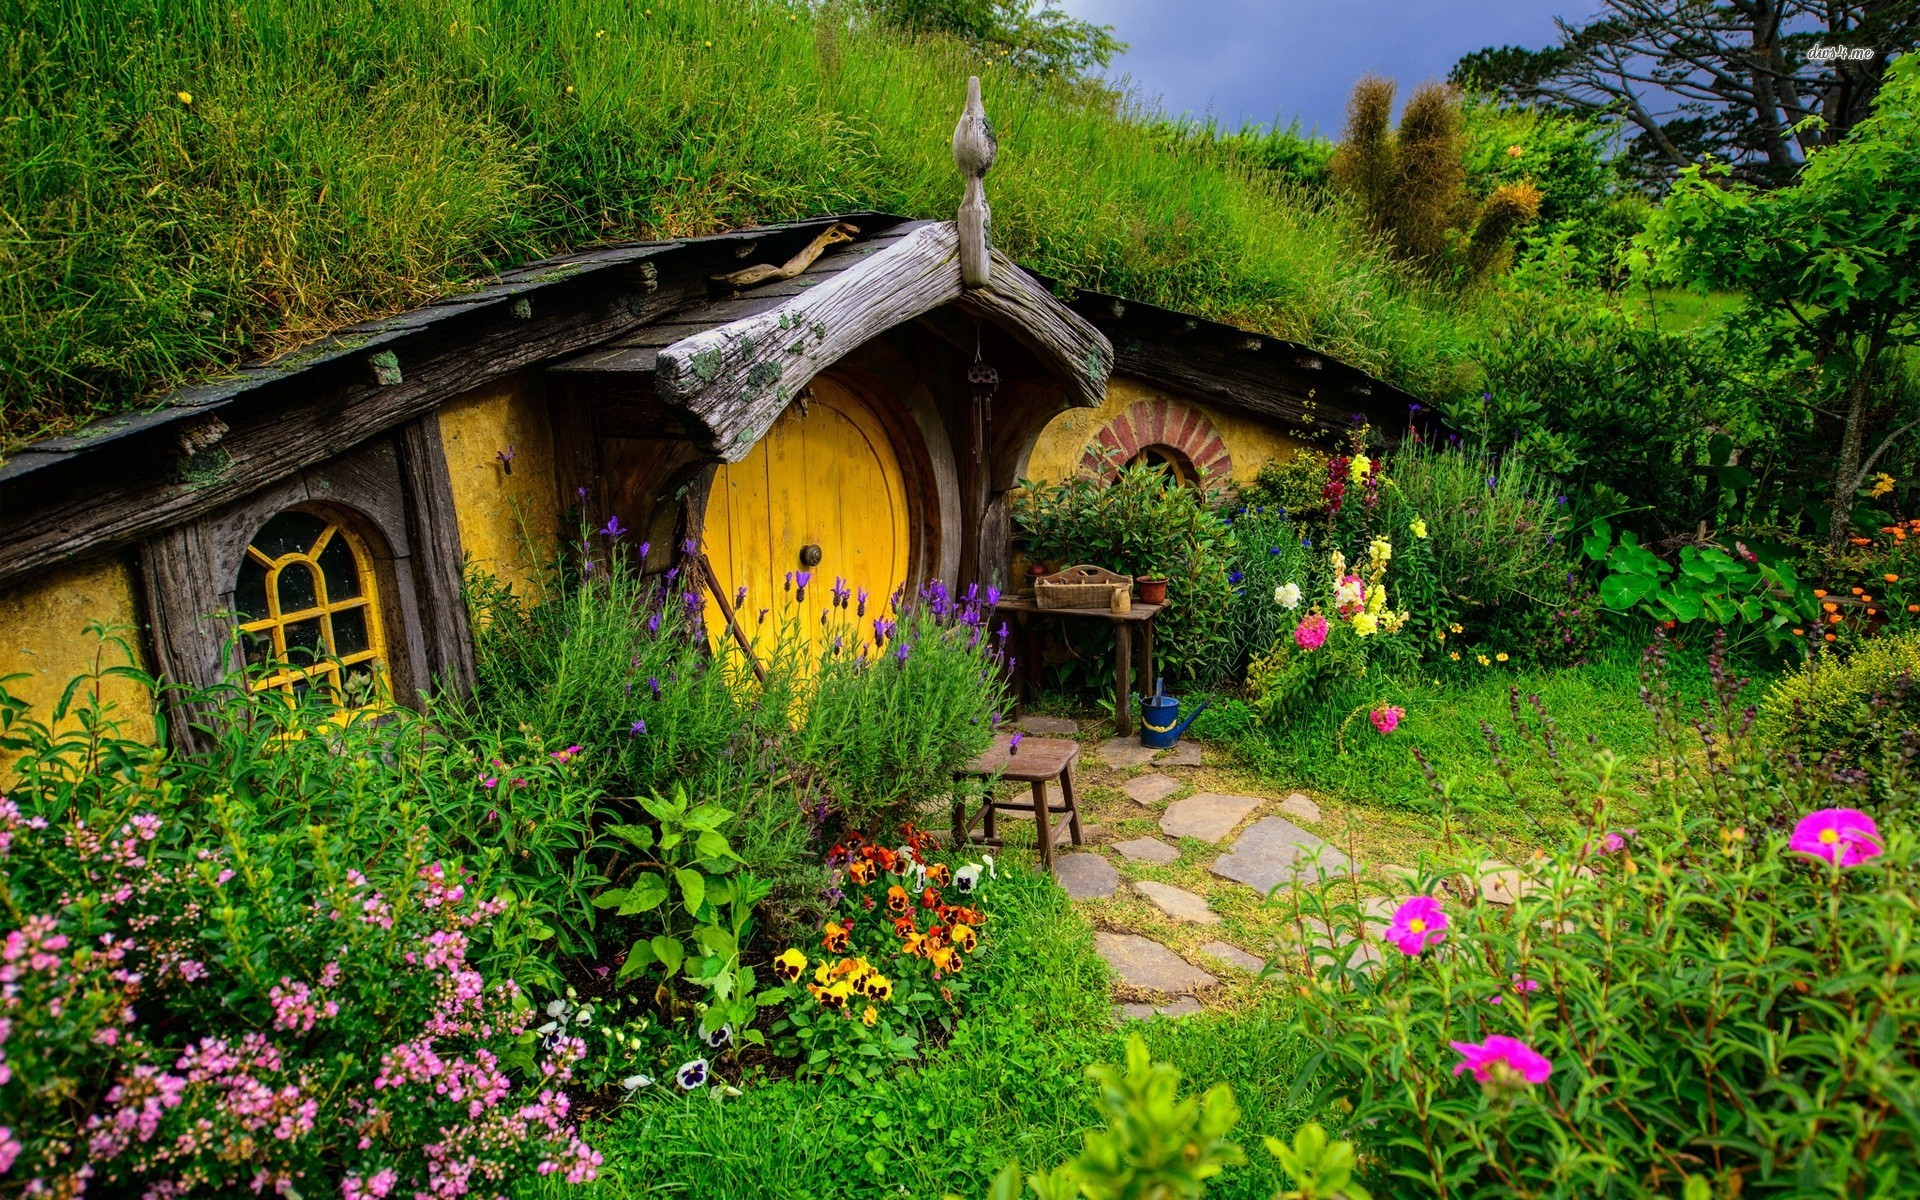 Hobbit house wallpaper wallpapersafari for Wallpaper home photos